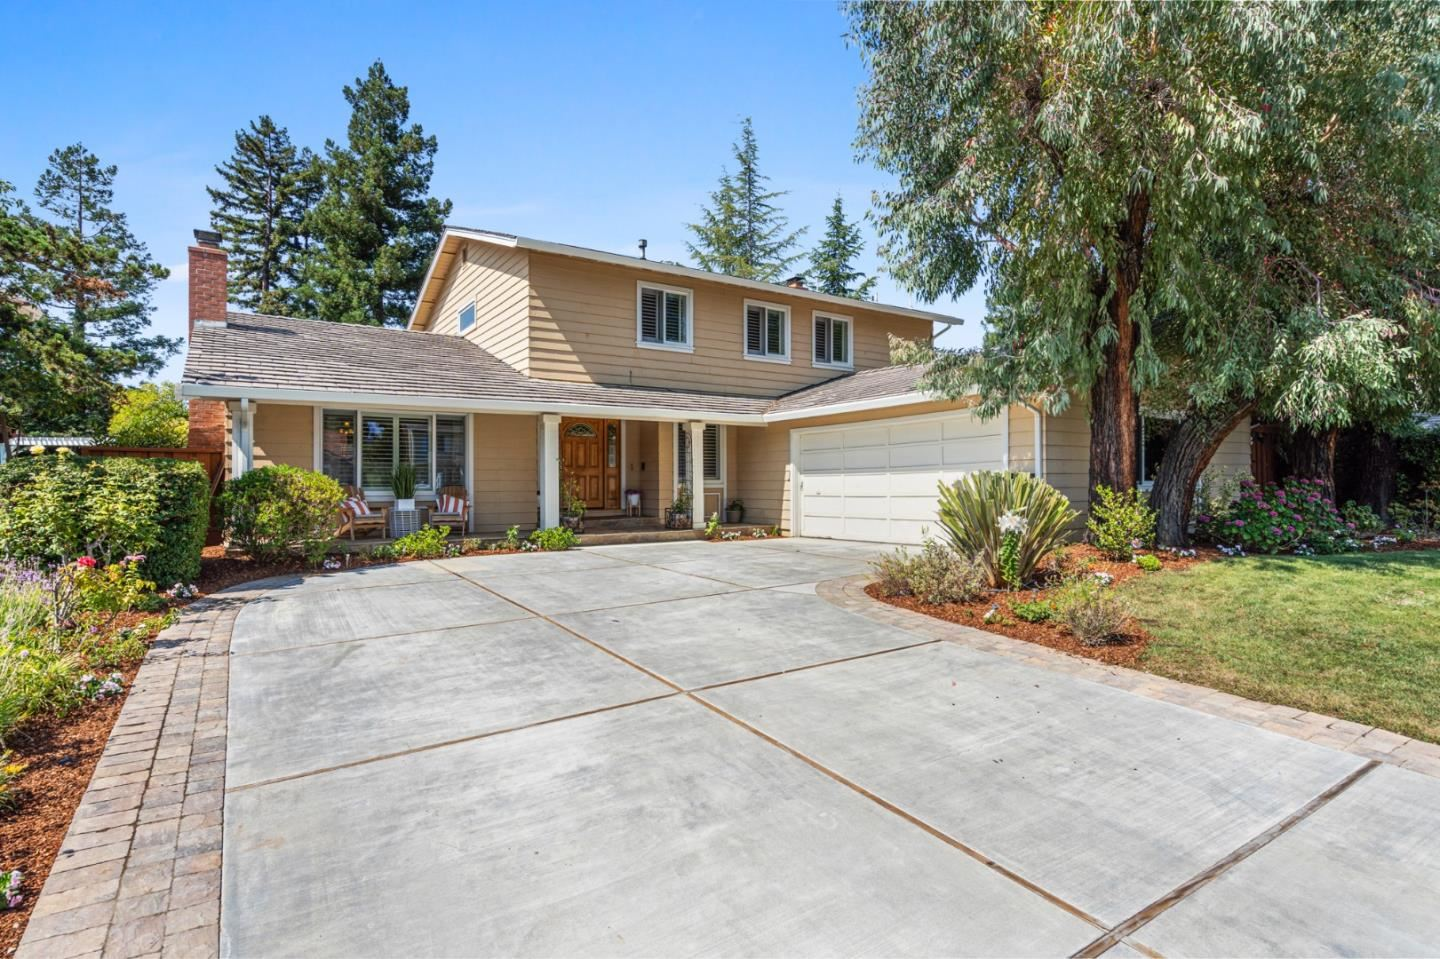 Photo for 17326 Parkside CT, MONTE SERENO, CA 95030 (MLS # ML81801212)